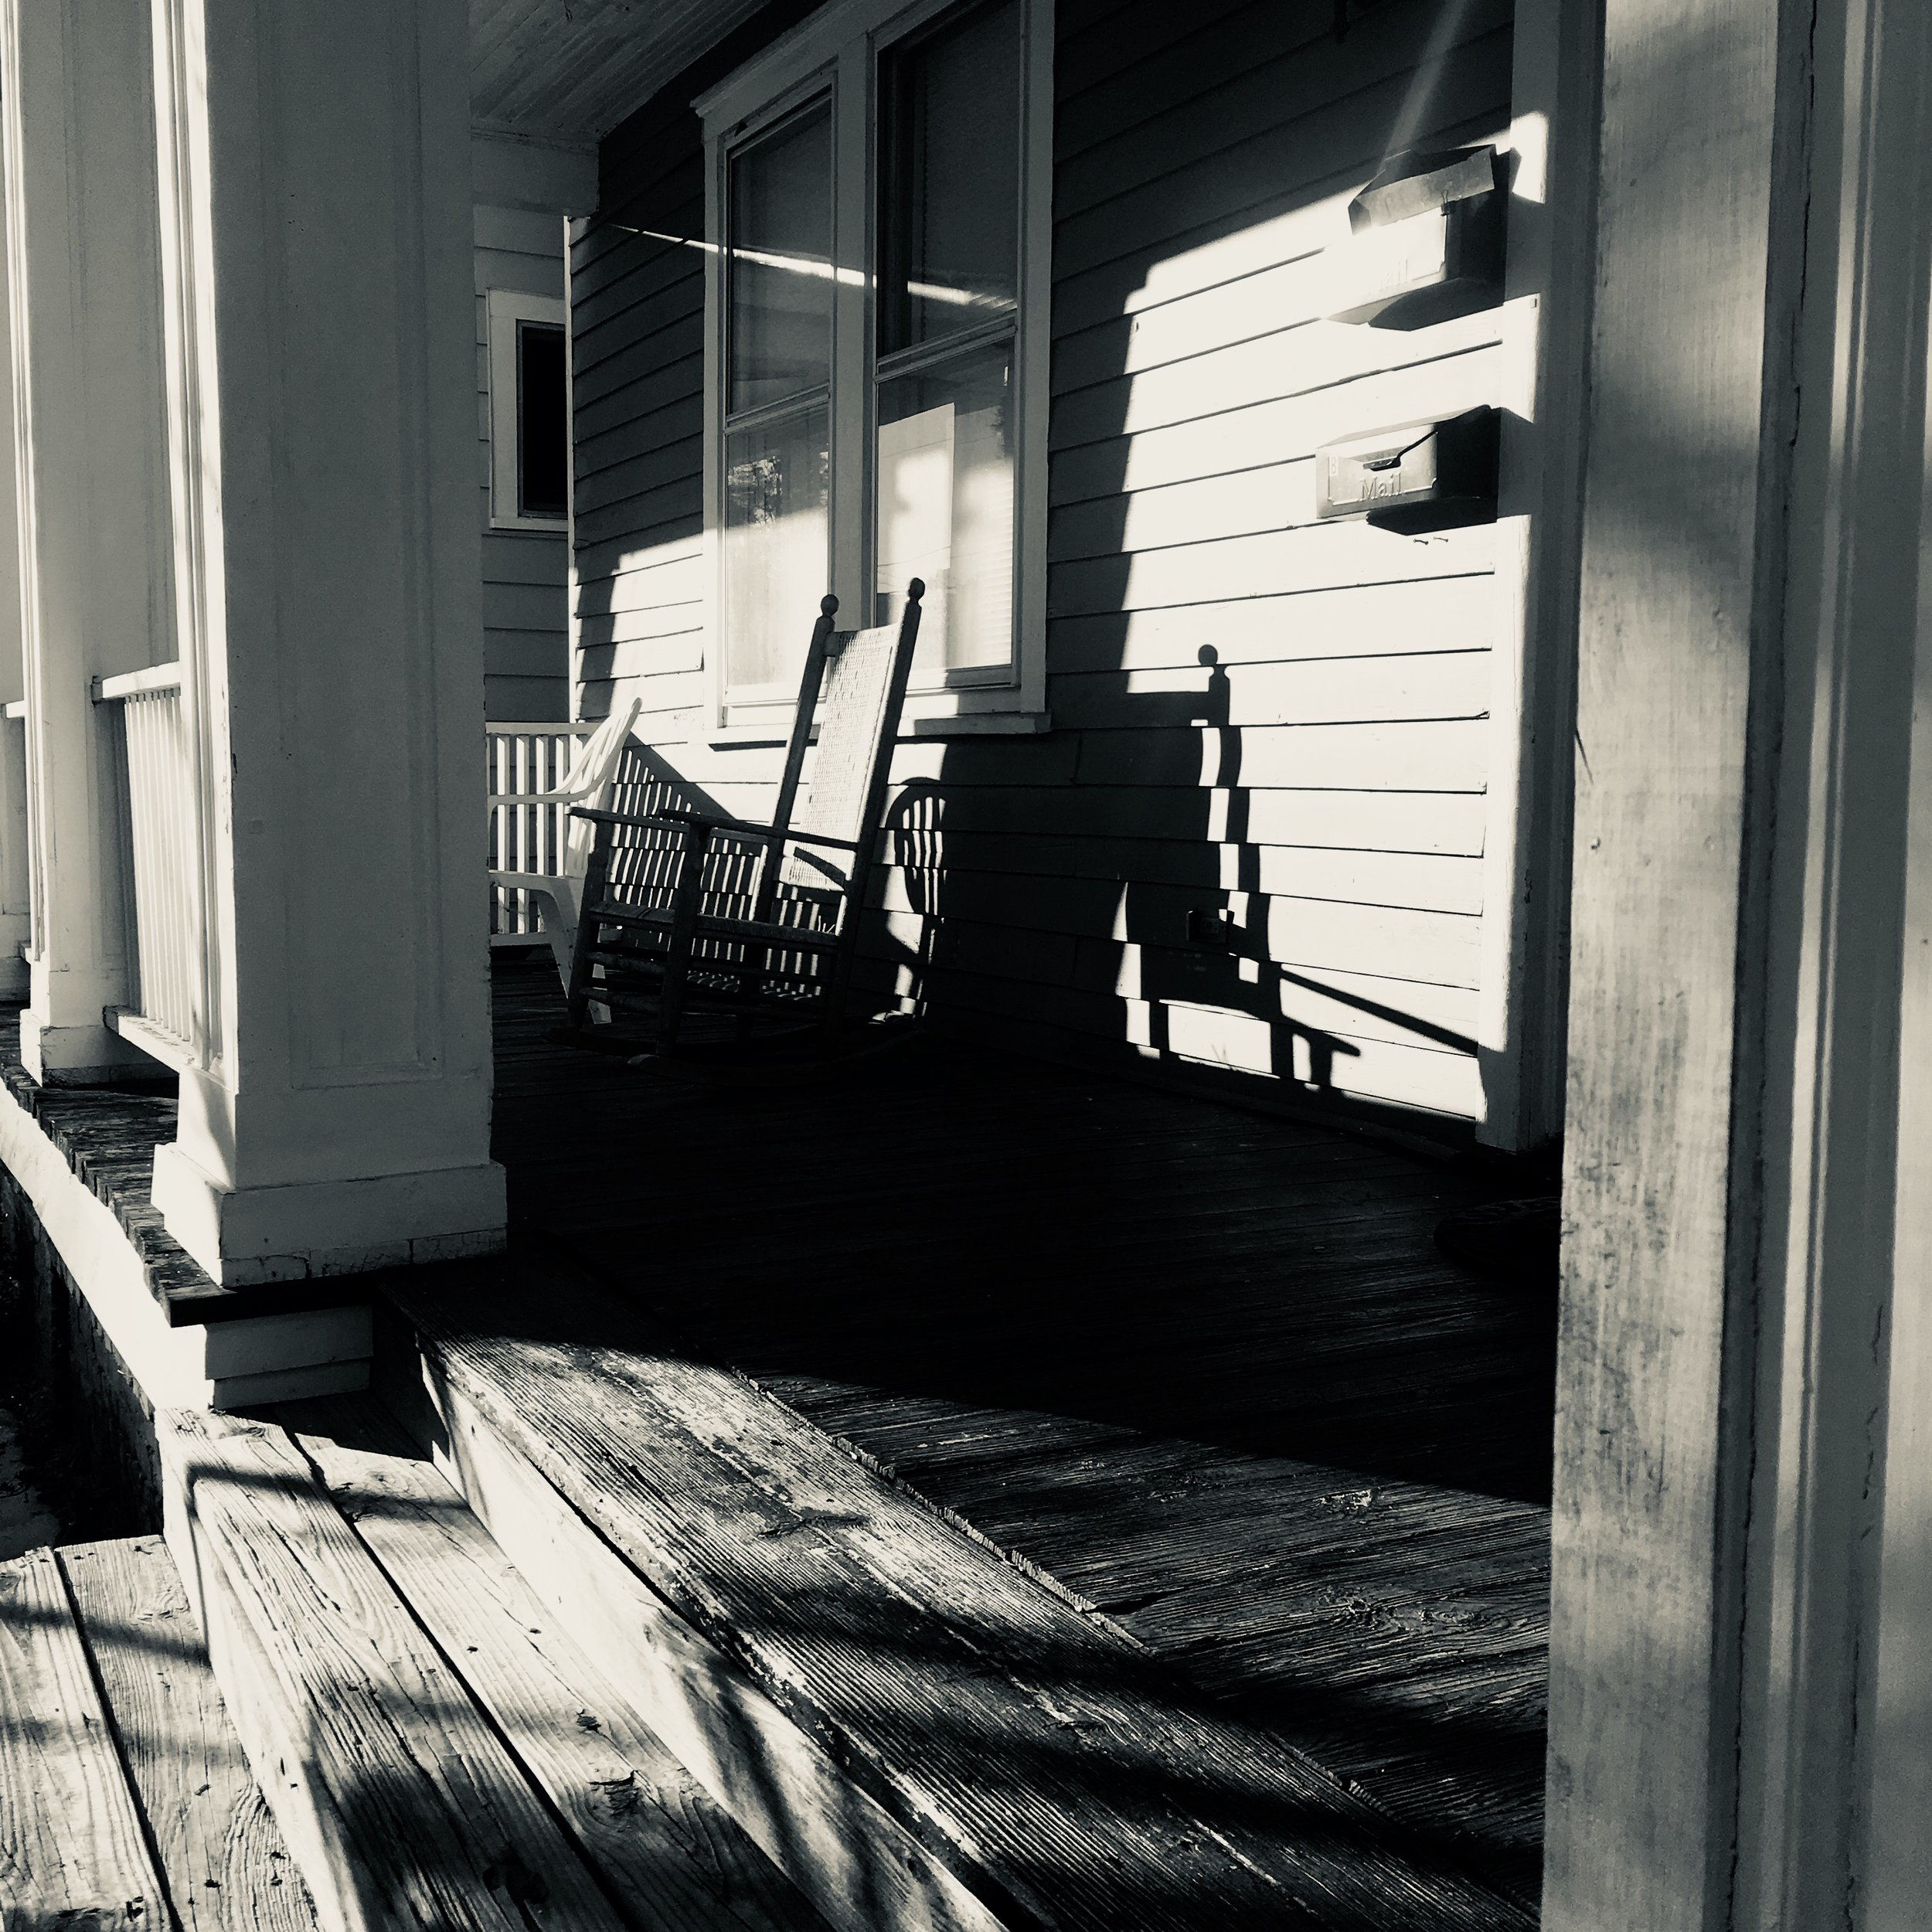 Classic end of the day, sun going down, empty porch rocking chair shot.